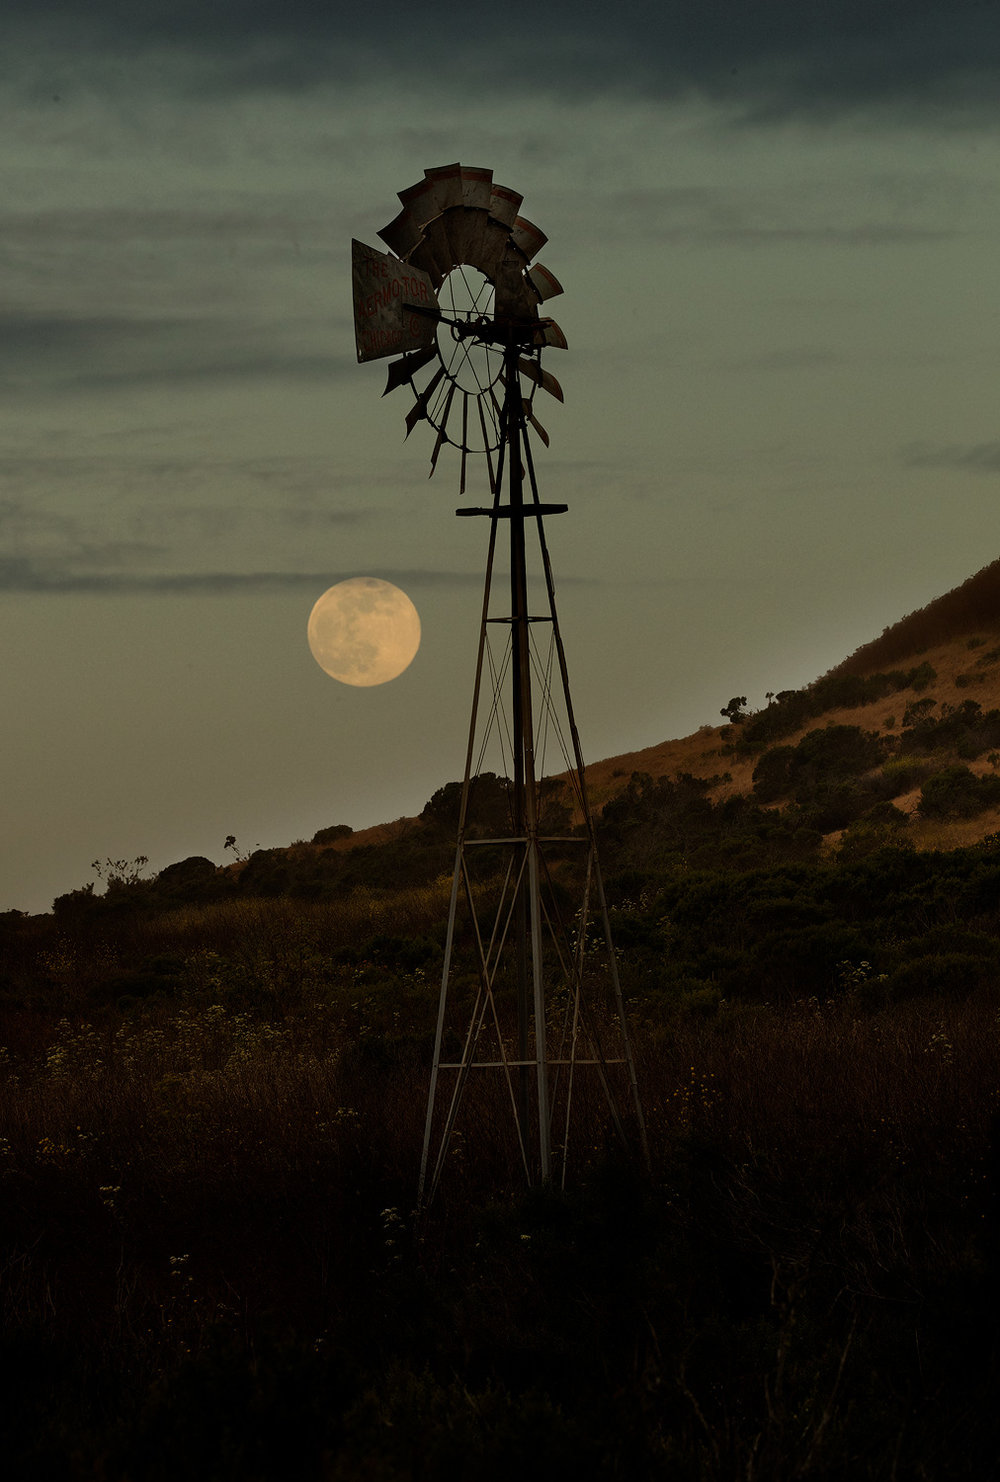 Moon rise and windmill. A delicate balance of light and dark is necessary to capture images like this, and the opportunity only presents itself one time a month.